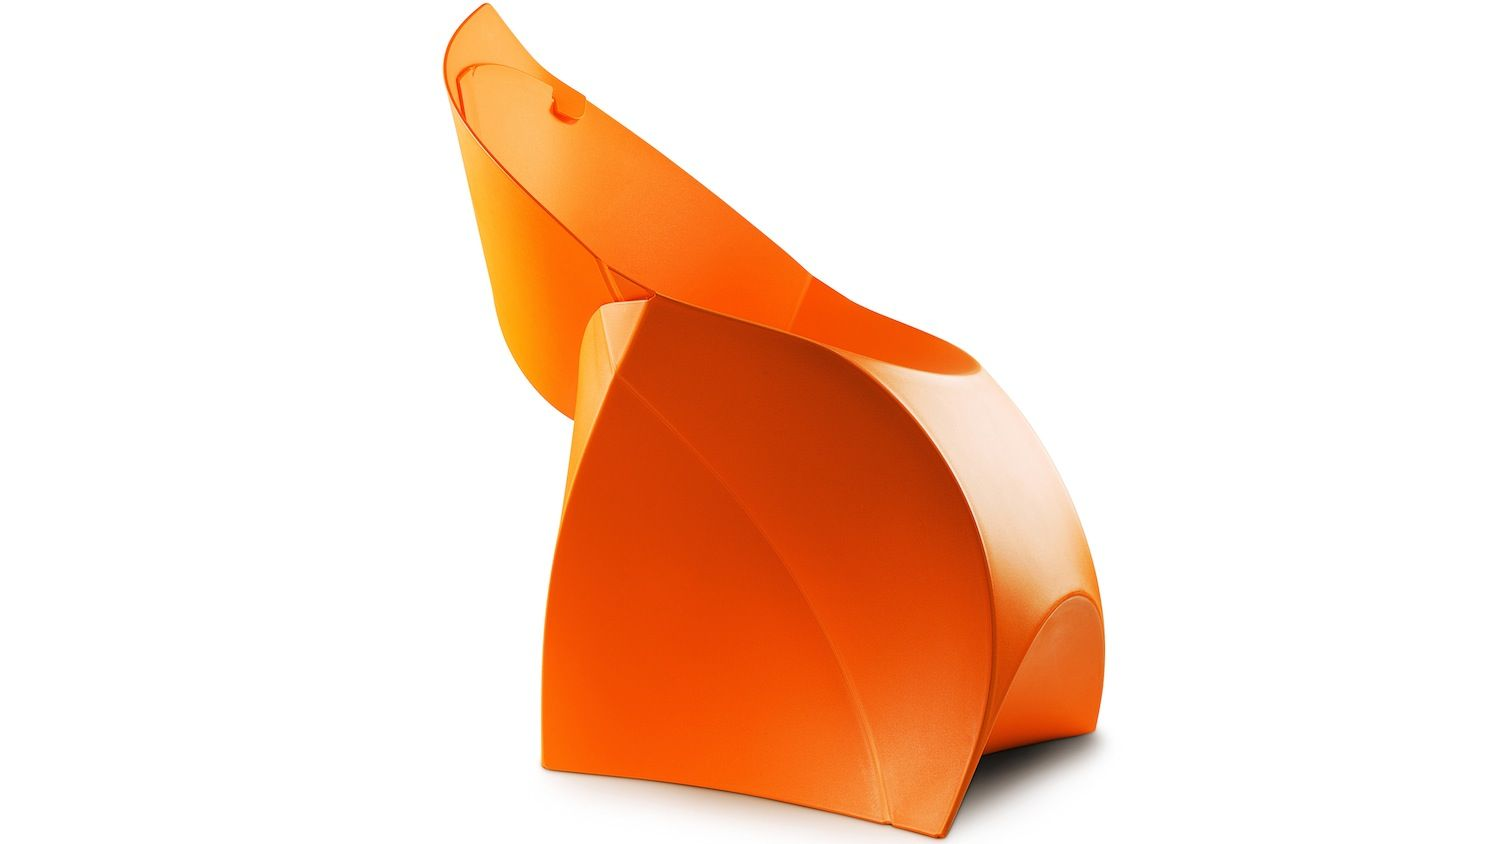 Origami foldable flux chair foldable chairs and mirror mirror origami foldable flux chair jeuxipadfo Gallery